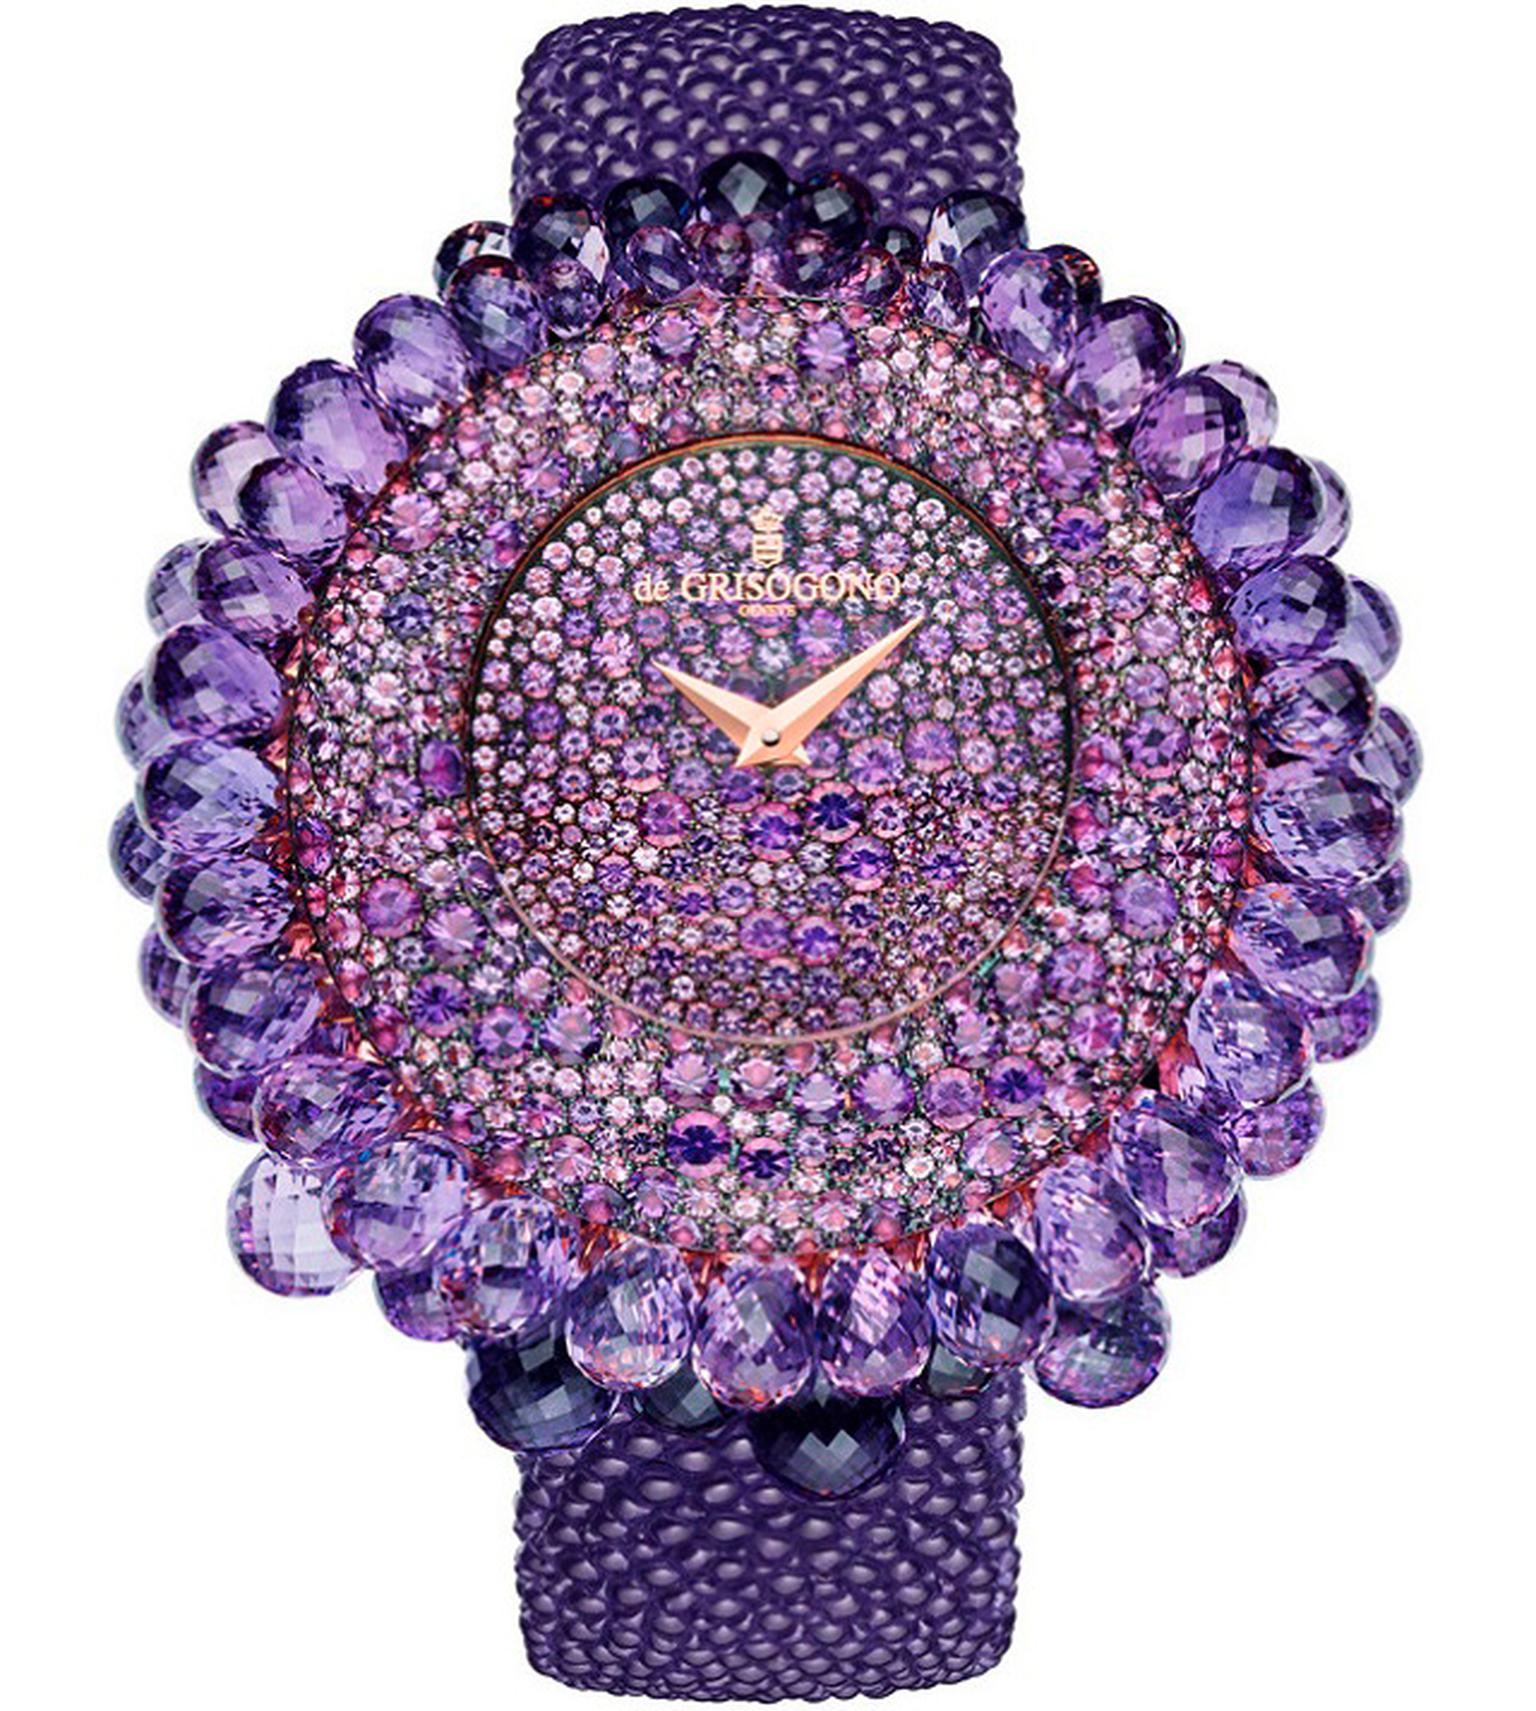 de GRISOGONO Grappoli high jewellery watch with snow-set amethysts on the dial and briolette-cut amethysts dangling from the bezel. Even the back of the pink gold case is set with stones and presented on a bubbly purple galuchat strap.